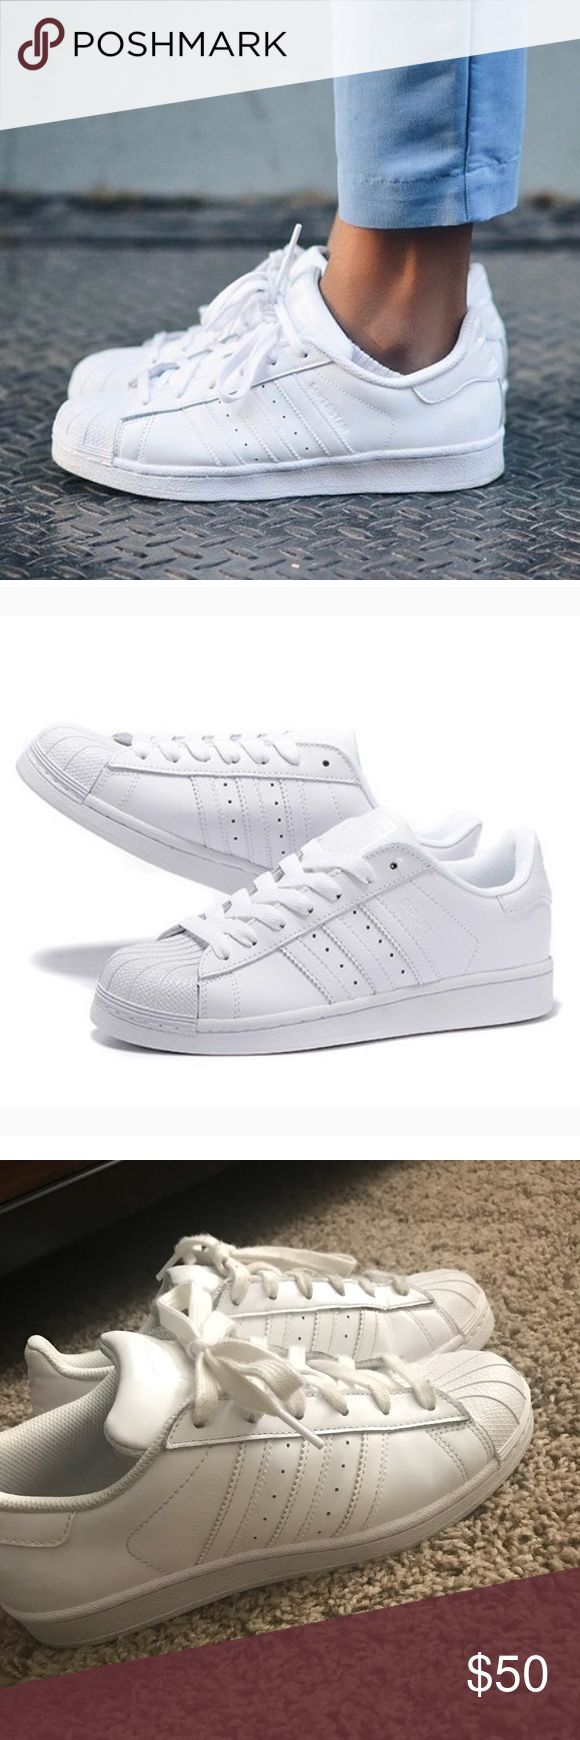 Adidas superstars All white Adidas superstar sneakers hardly worn adidas Shoes Sneakers